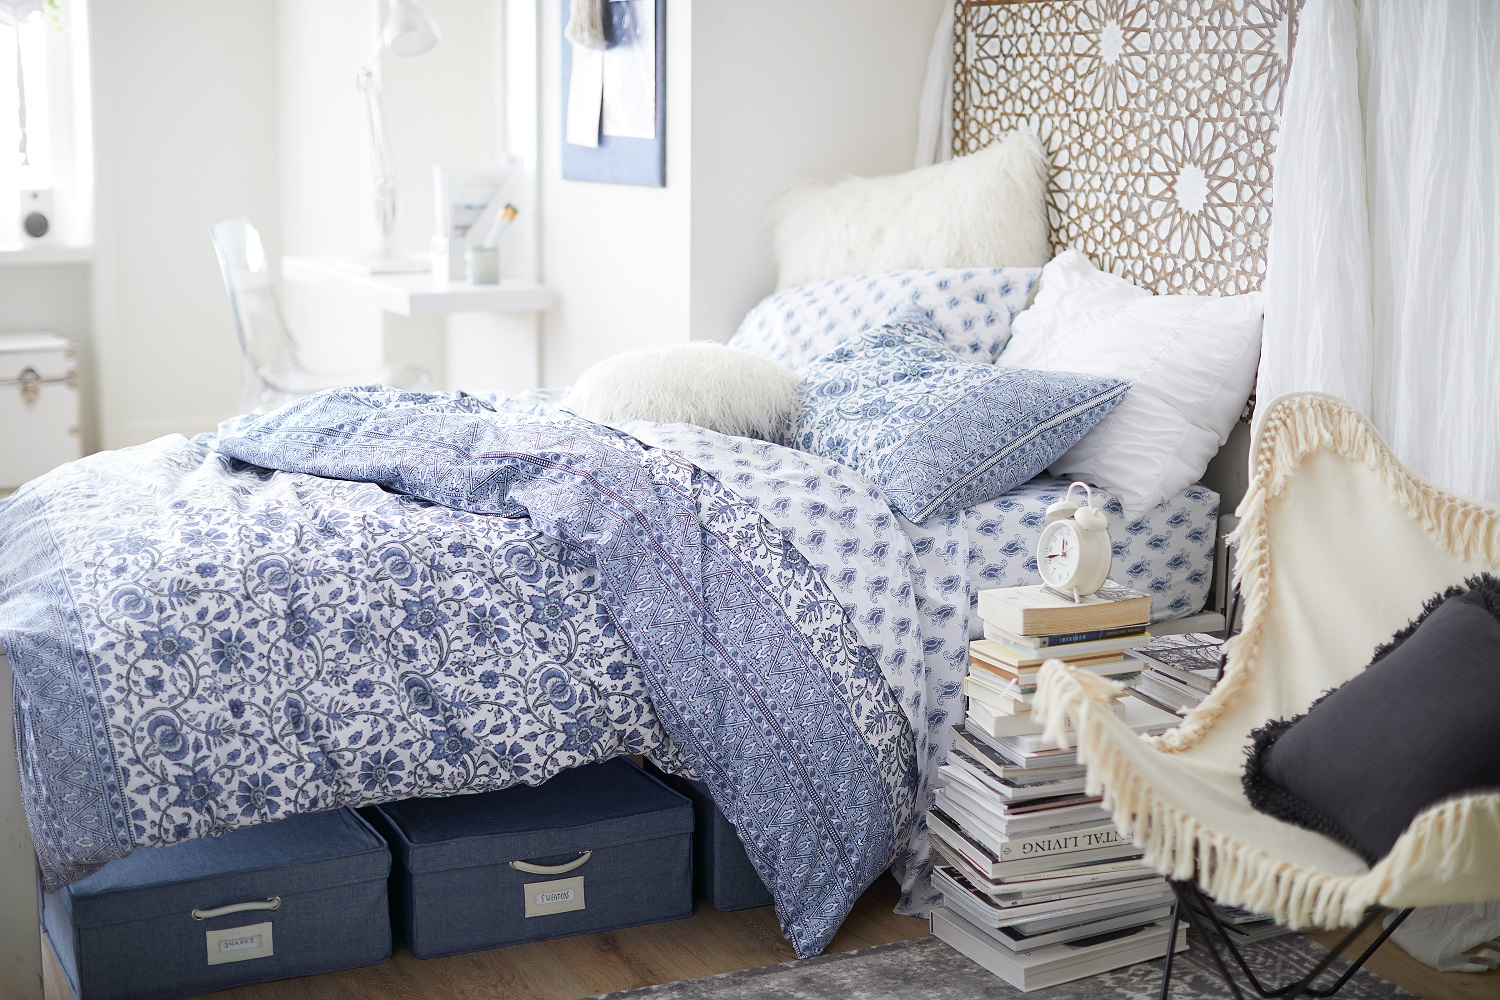 Under-the-bed storage, a pretty and practical comforter, wall décor and a comfy chair all help to pull the dorm room look together. Elevate the look of your sleep space with patterns and paisley! Pottery Barn bundles everything from mattress pad to pillow insert to duvet with all the basics you need to make your best bed. Photo: Pottery Barn